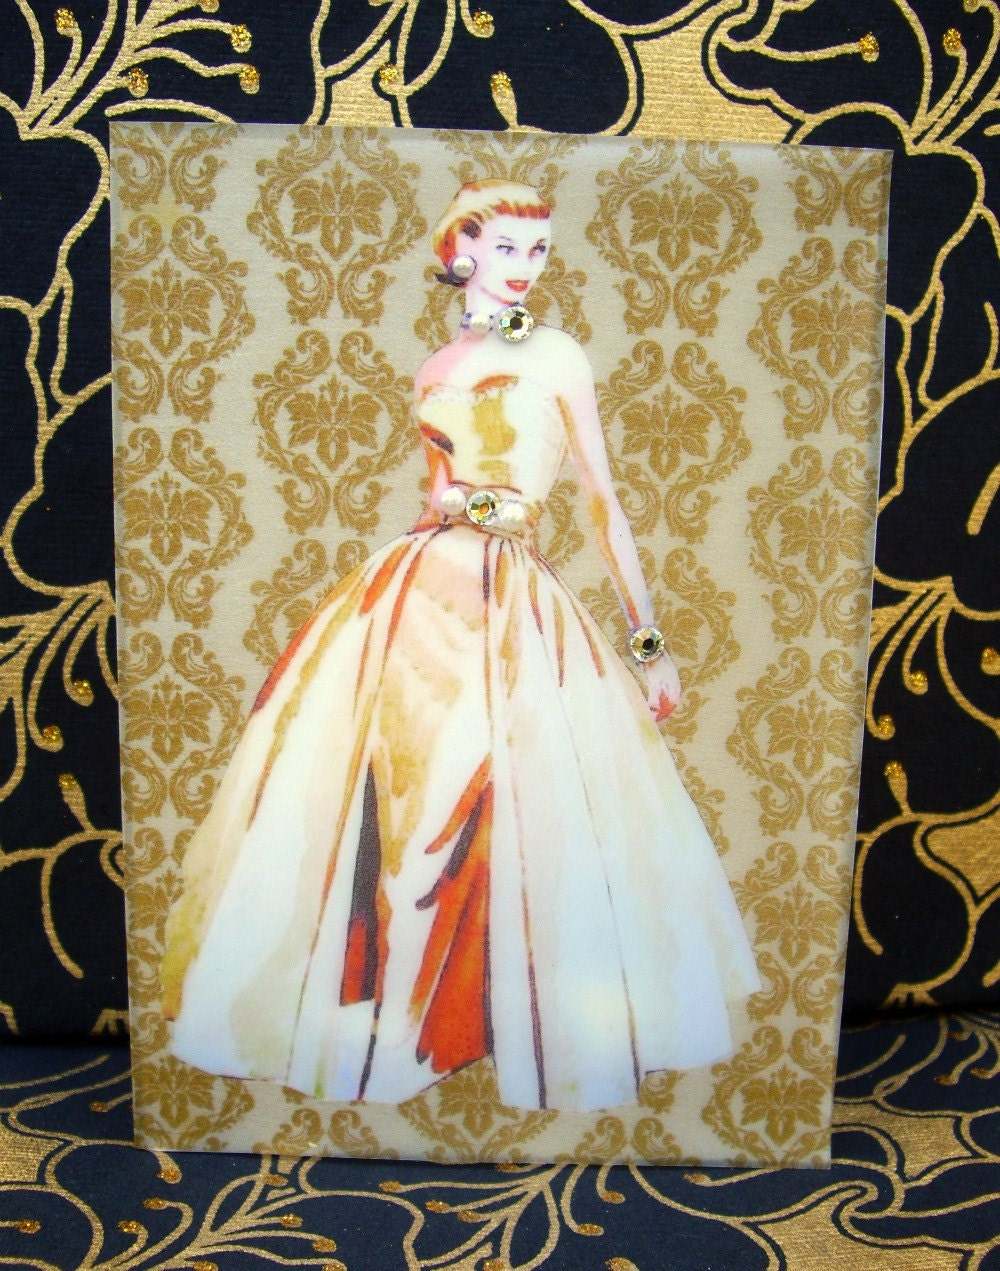 Grace Card / Vintage Printed Collection / 50s Glamour Girl / Handmade Greeting Card